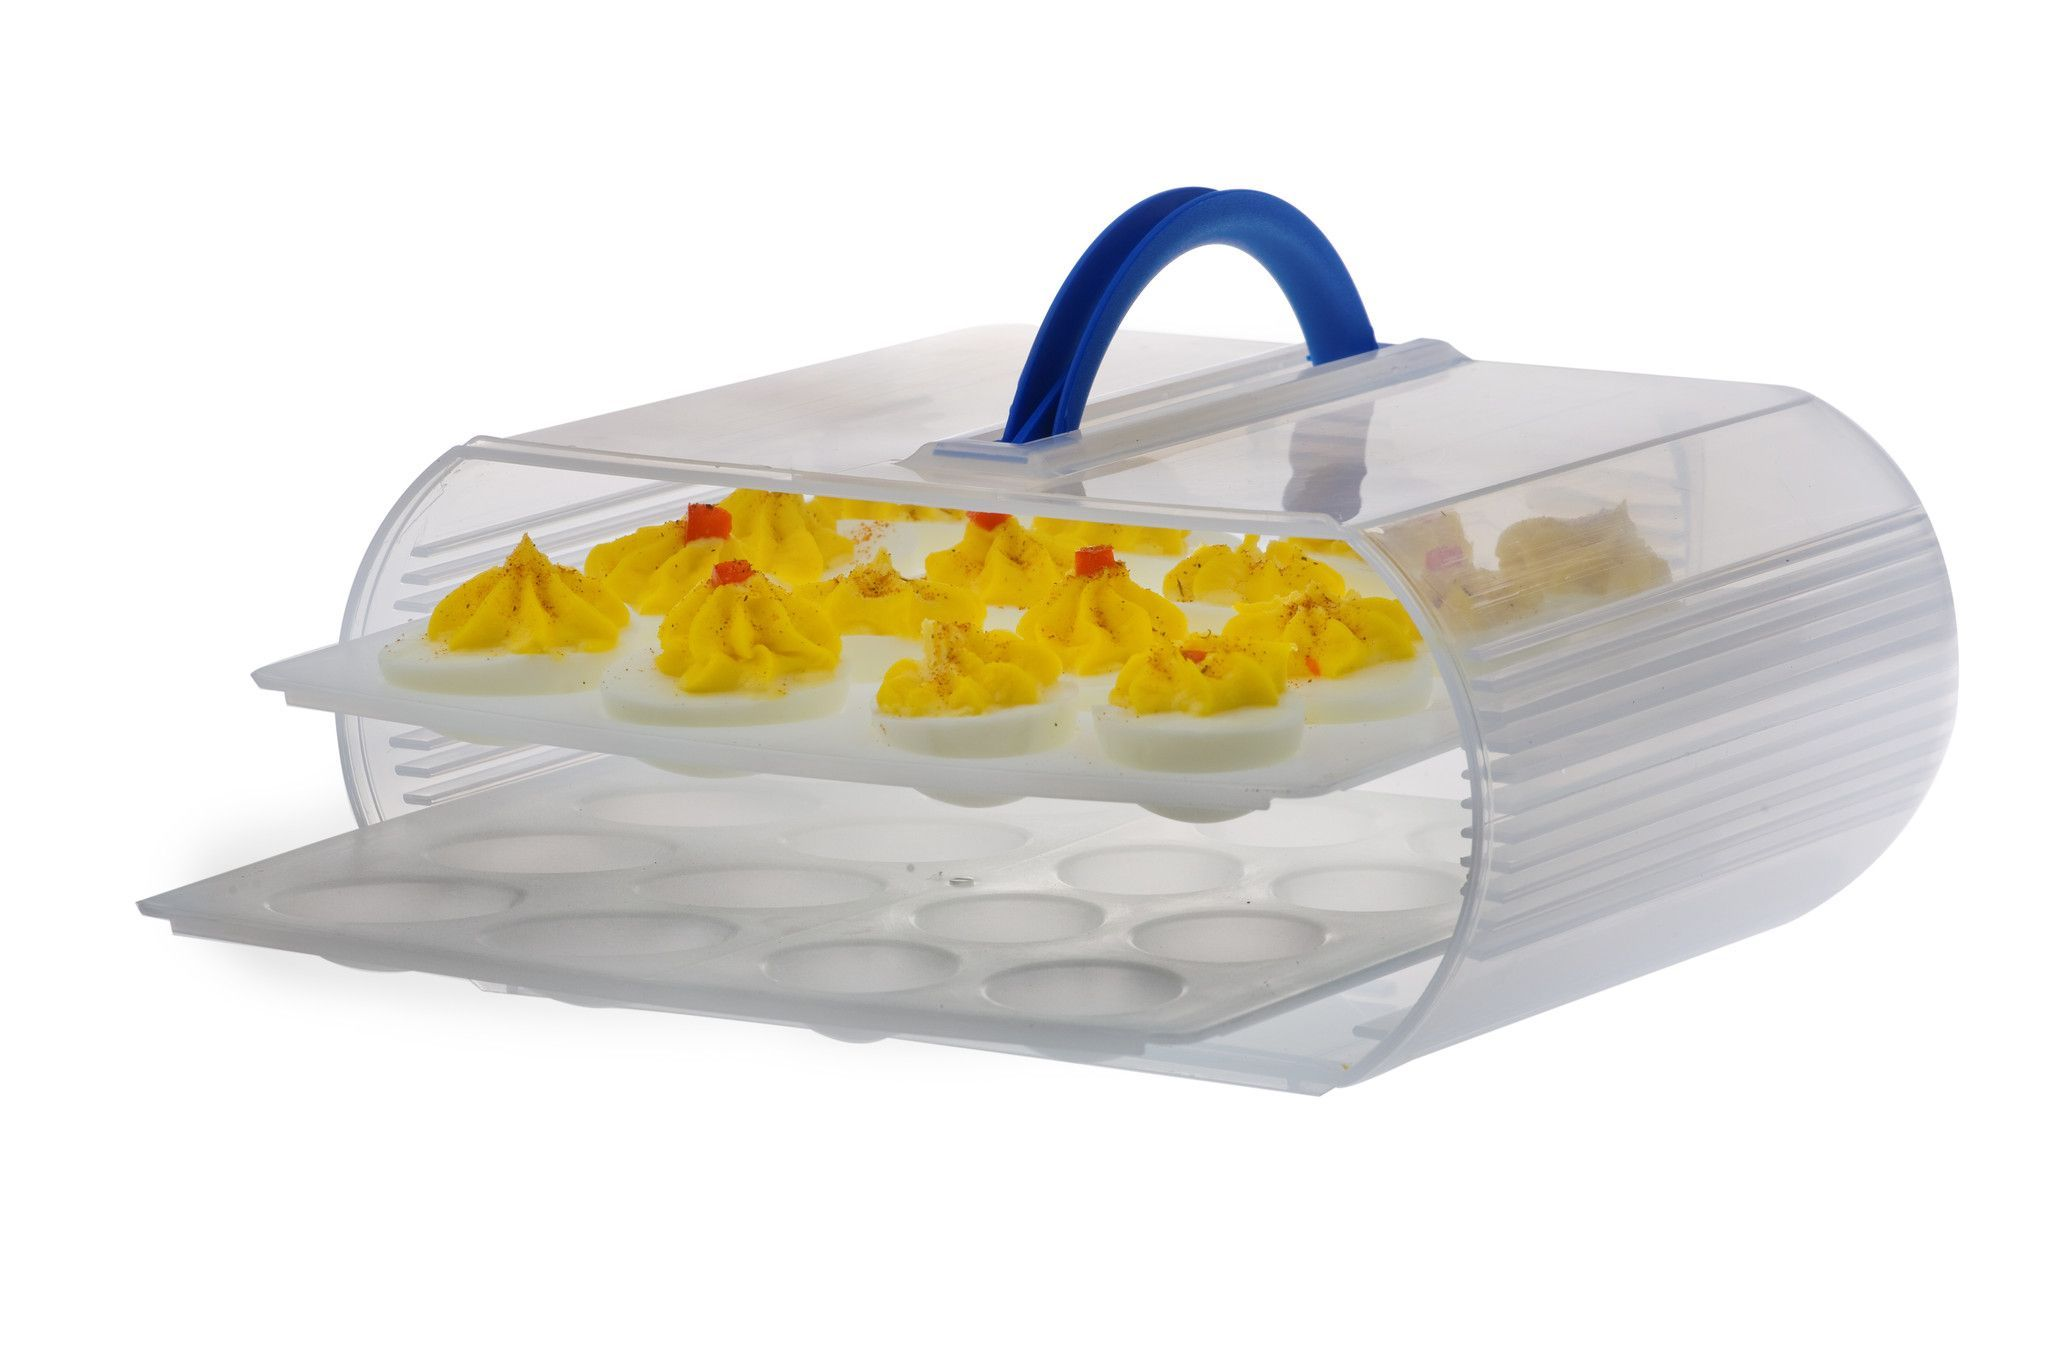 Charming Use The Deviled Egg Trays Instead Of The Straight Trays In Your Bakers Sto  N Go Food Storage Containers. Now You Can Store 32 Deviled Eggs, Even  Truffles. Home Design Ideas